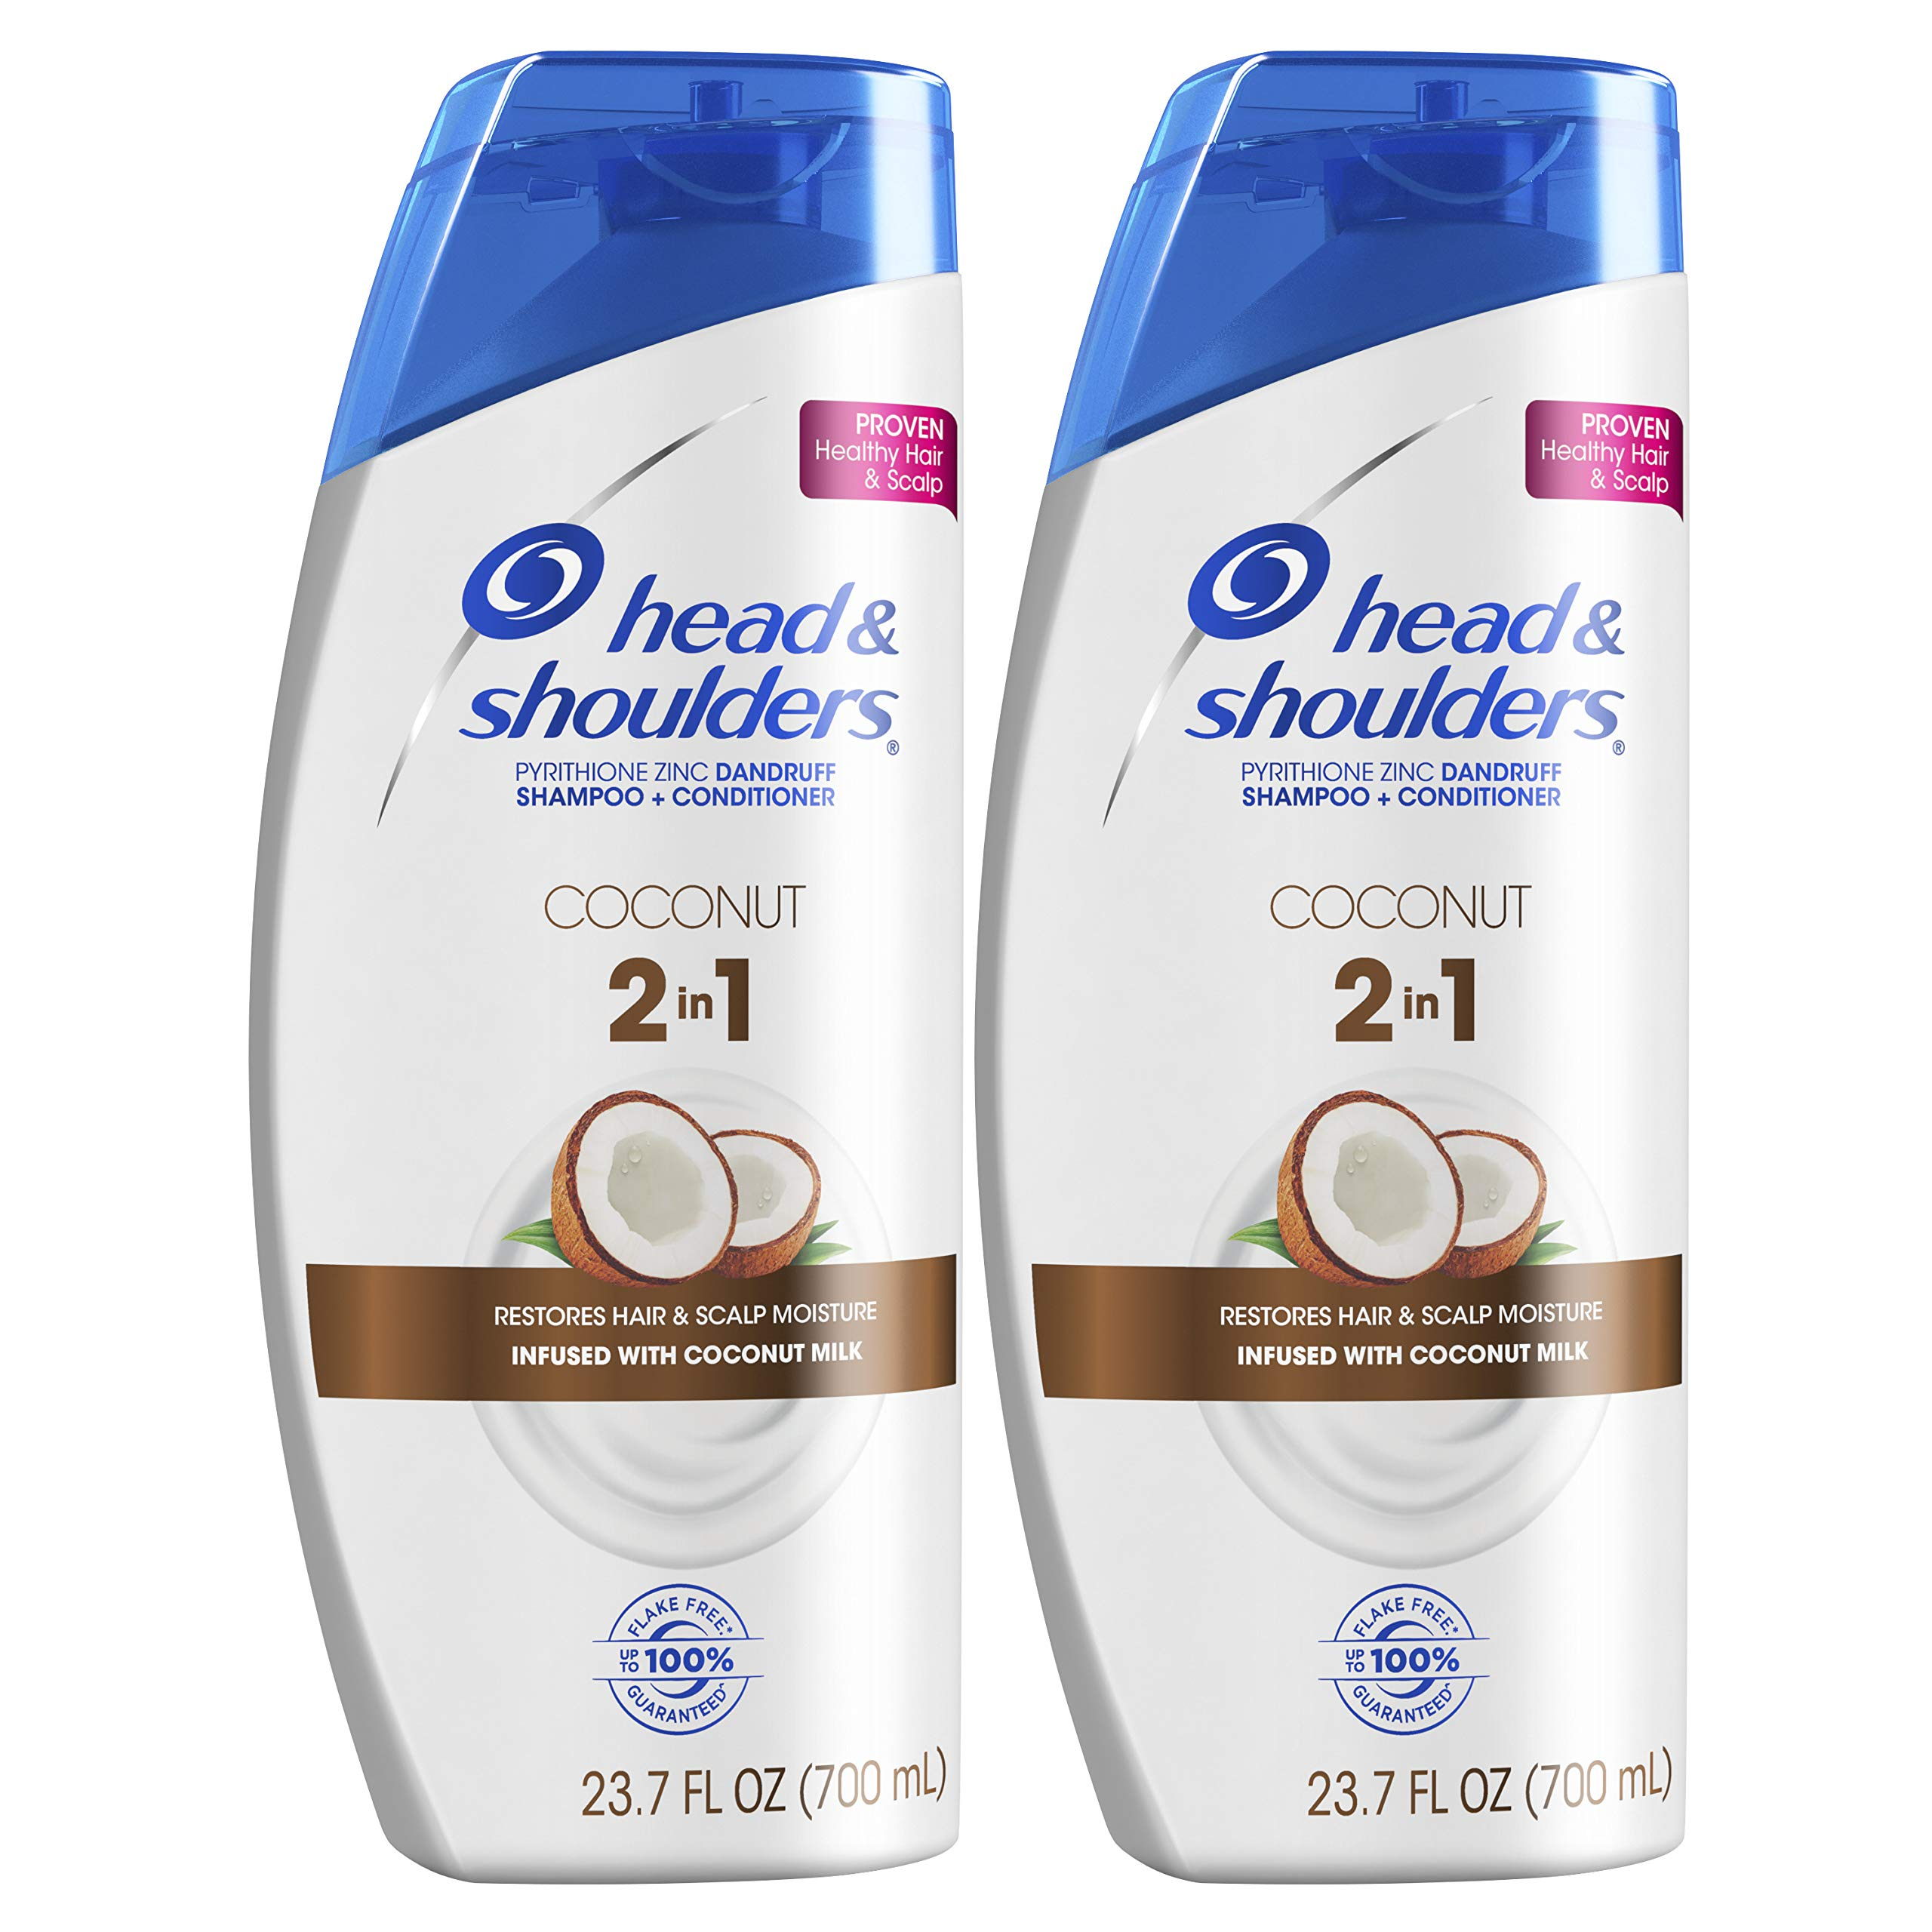 Head and Shoulders Shampoo and Conditioner 2 in 1, Anti Dandruff Treatment and Scalp Care, Coconut Daily Use, 23.7 fl oz, Twin Pack by Head & Shoulders